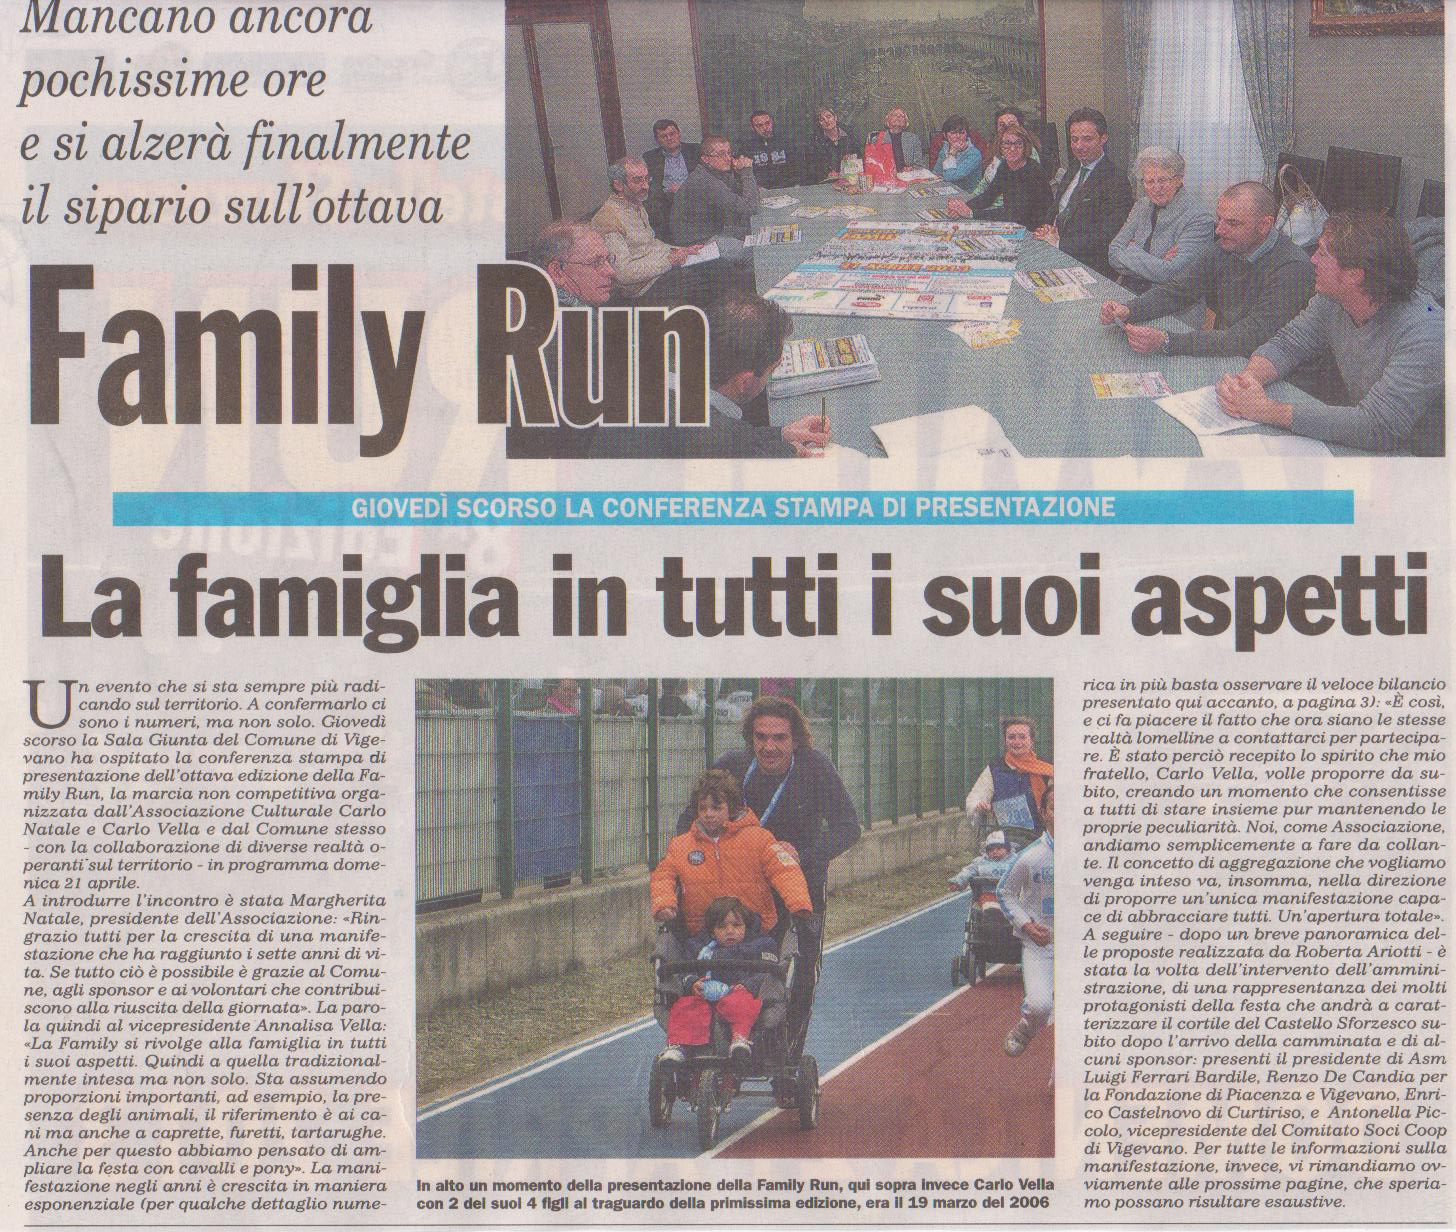 Conferenza stampa Family Run